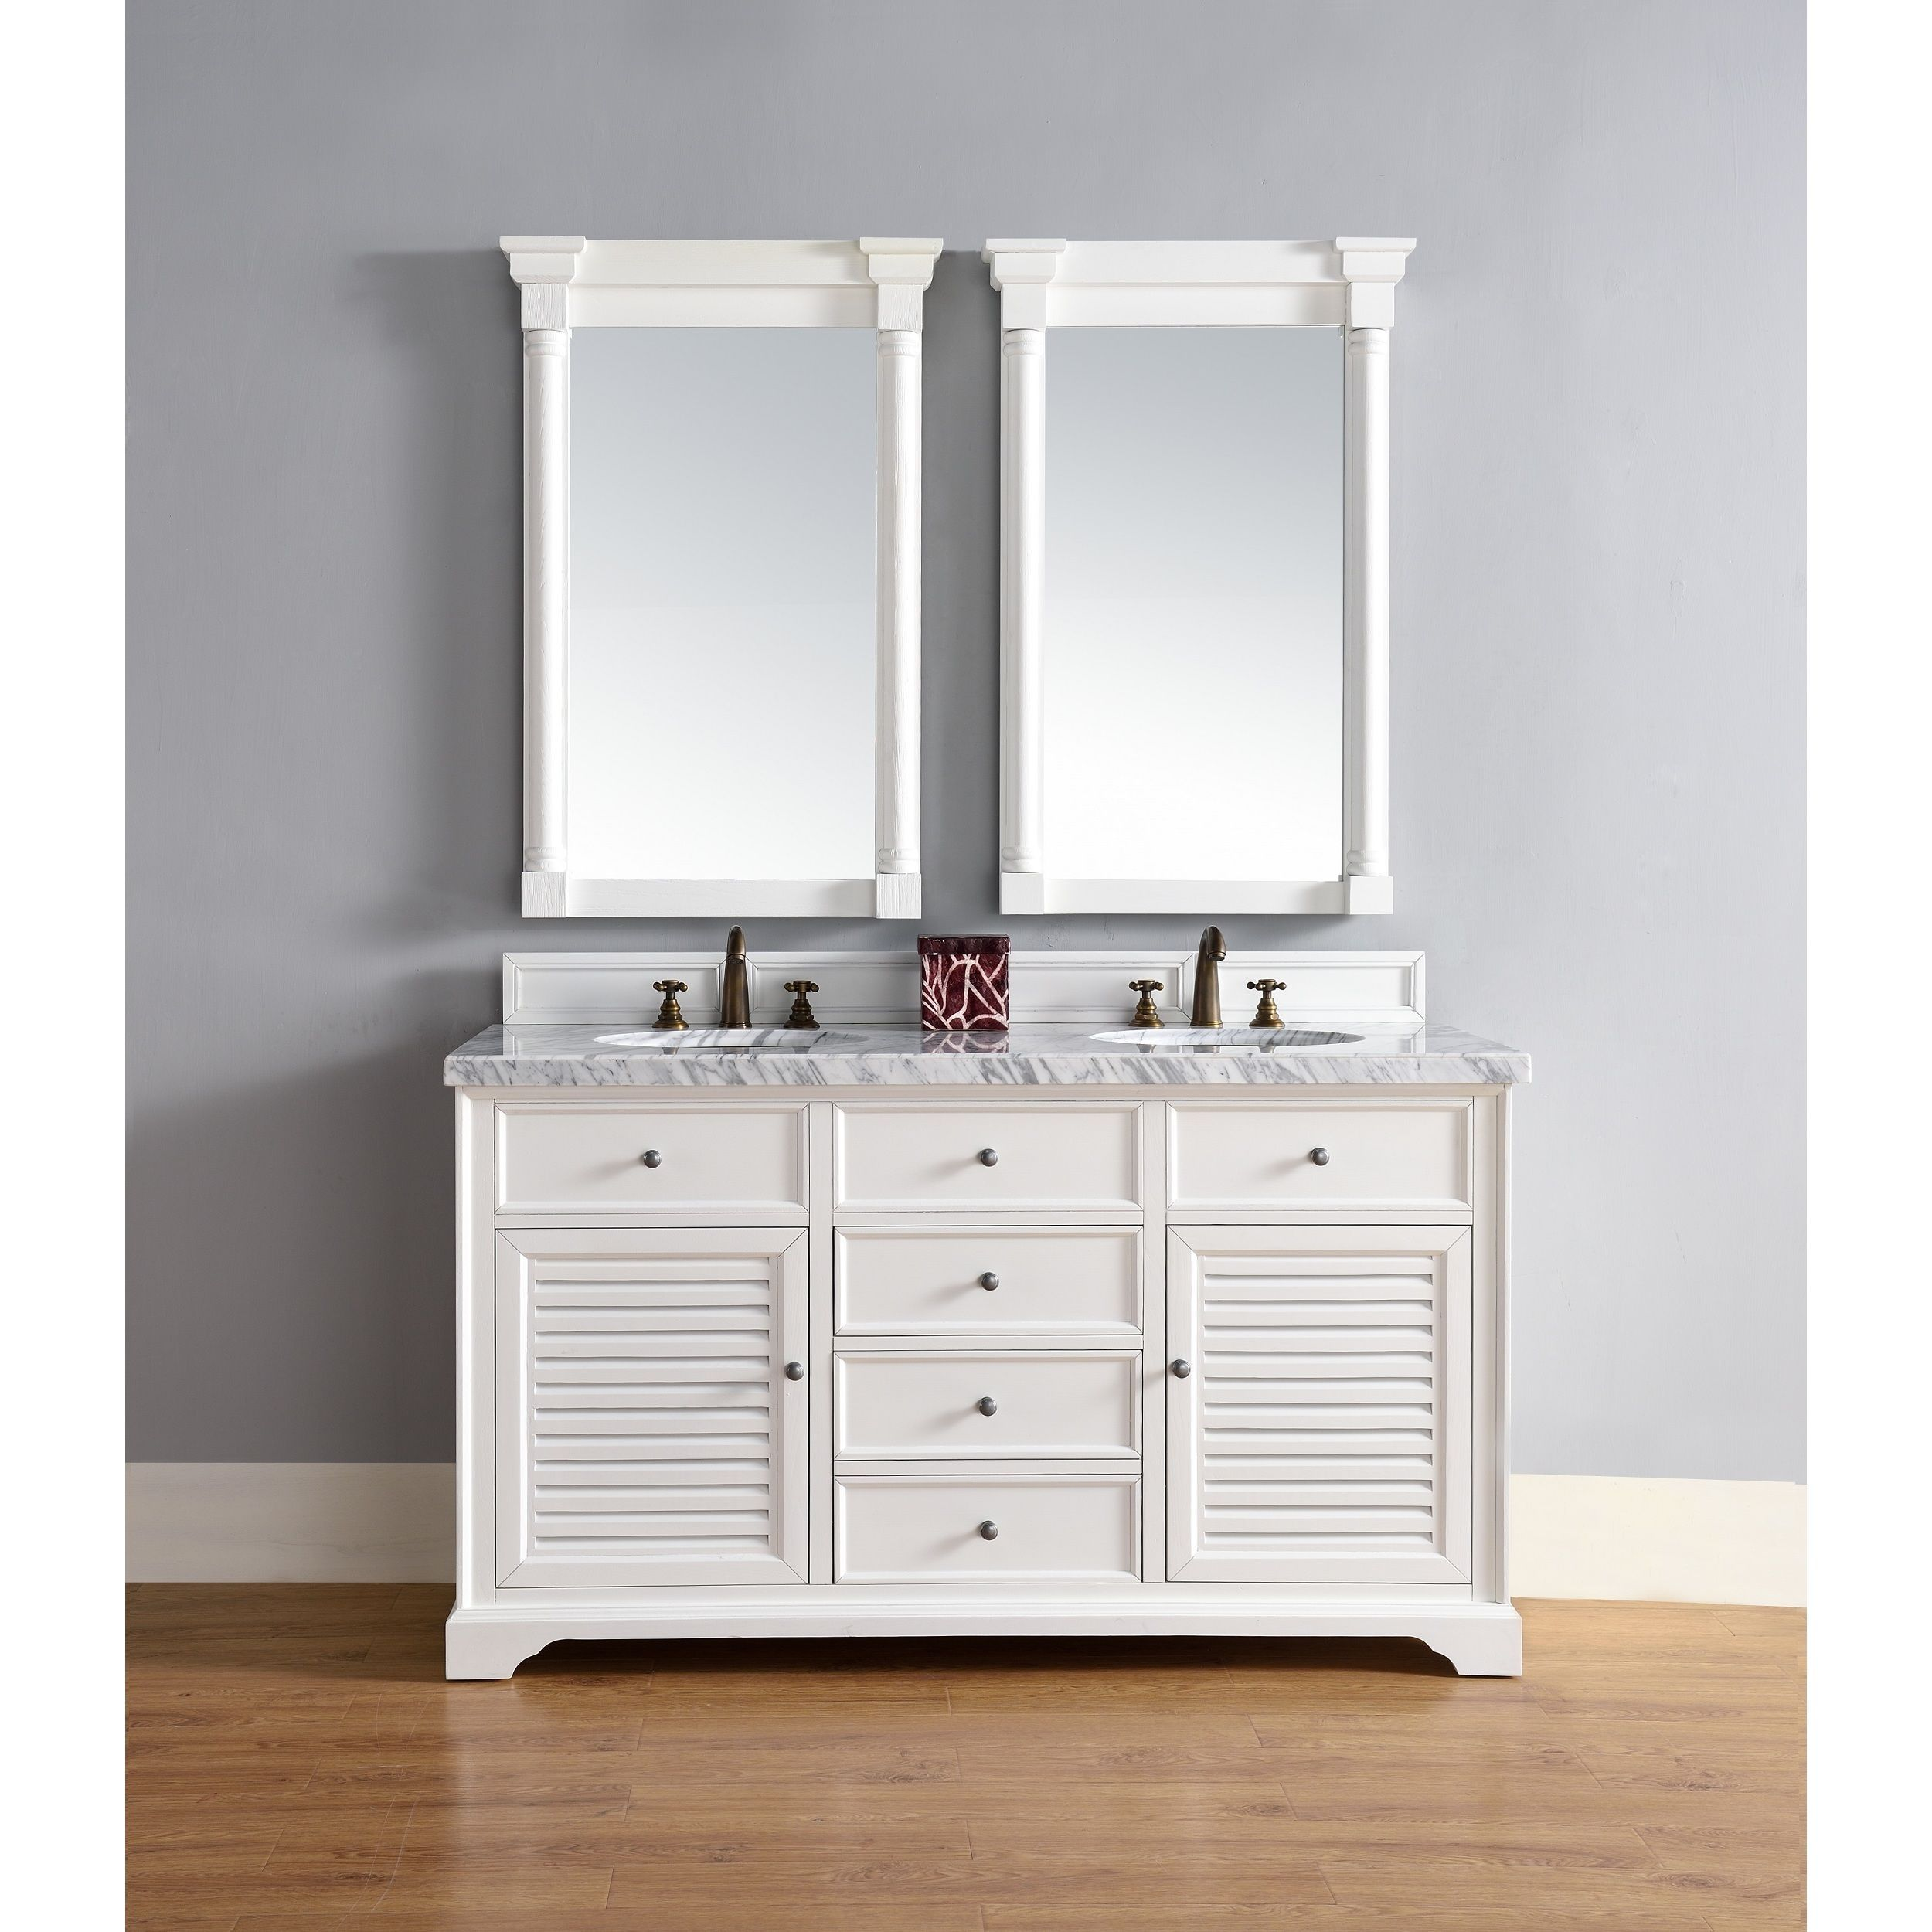 James Martin Furniture Savannah 60 Inch Double Vanity Cabinet, Cottage  White (Base   No Top), Size Double Vanities